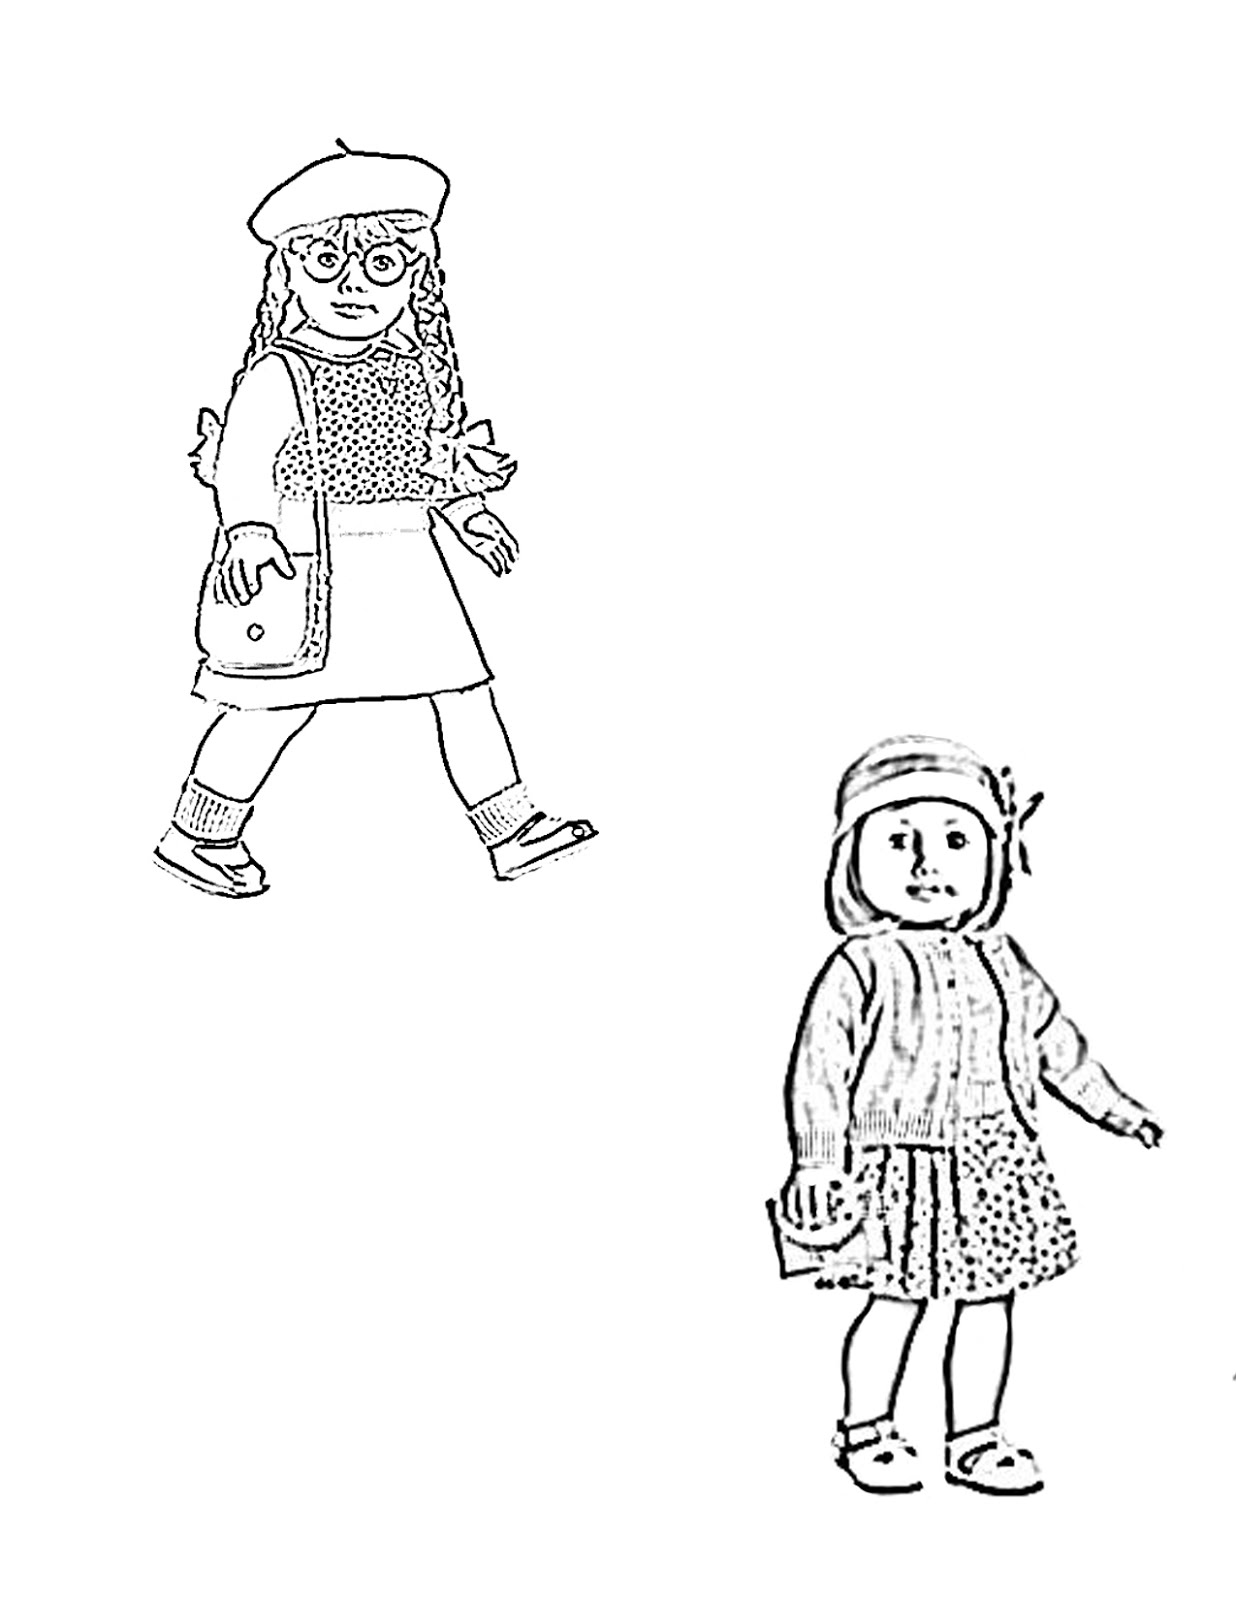 pictures of american girl dolls to color american girl doll julie coloring page from american girl dolls girl pictures american color of to